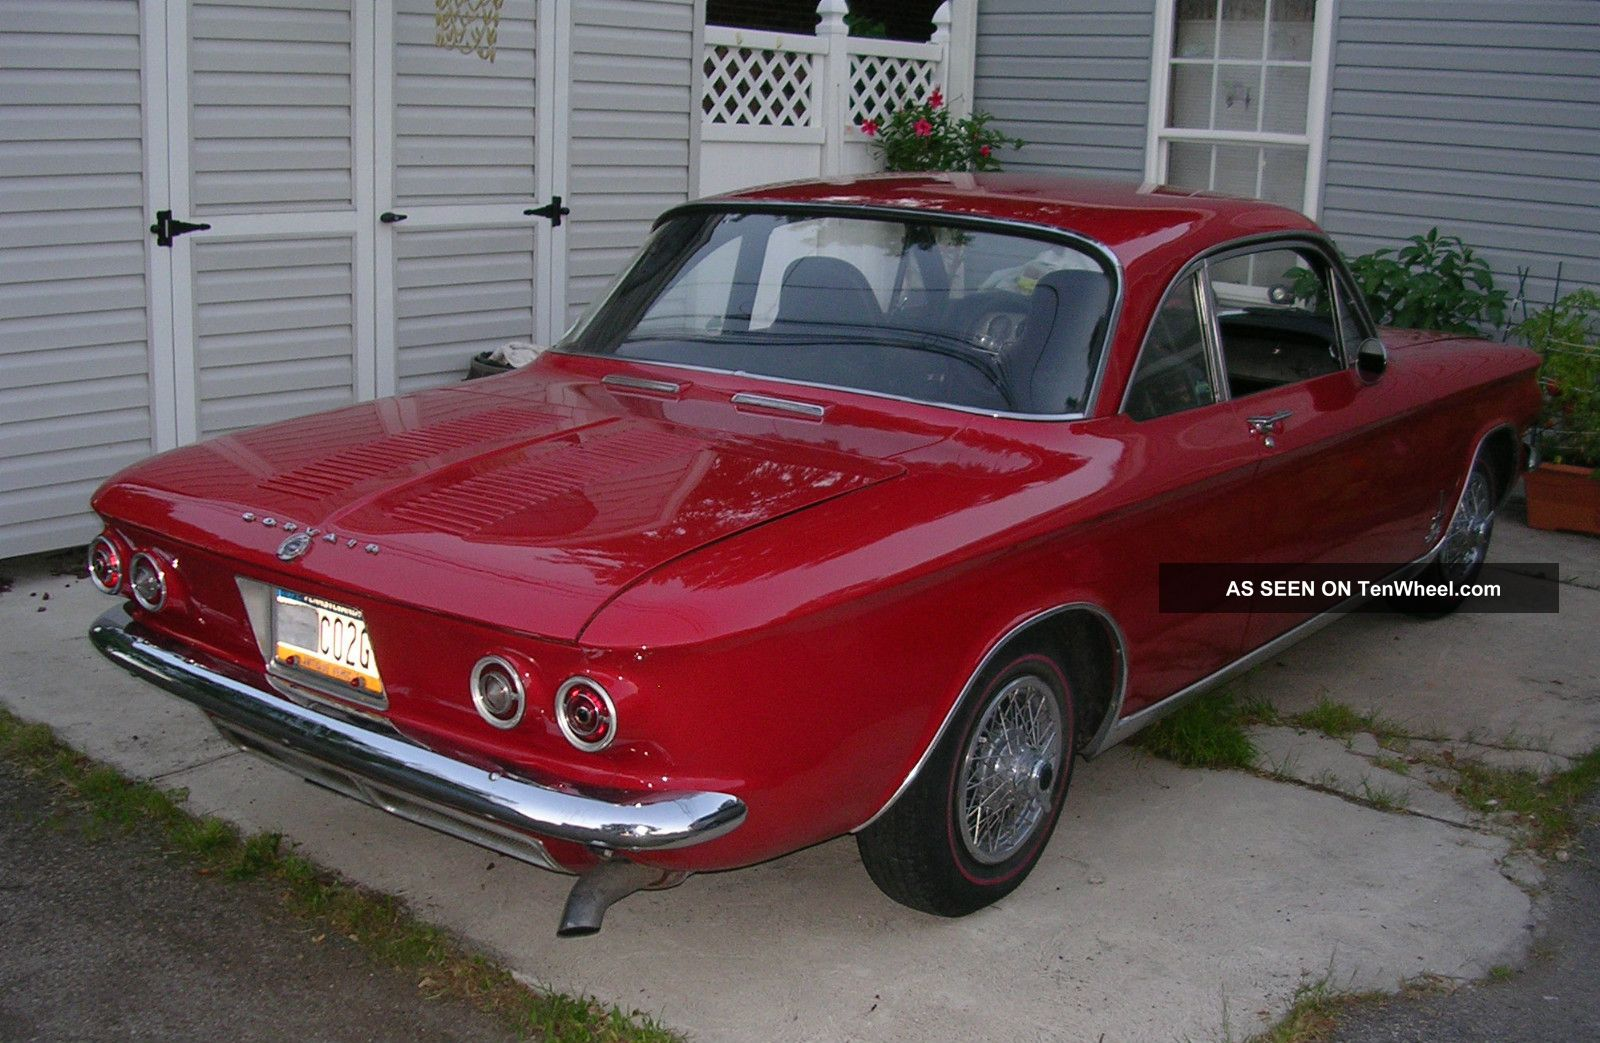 2013 Chevy Malibu Owners Manual >> 1964 Chevy Corvair Monza Spyder